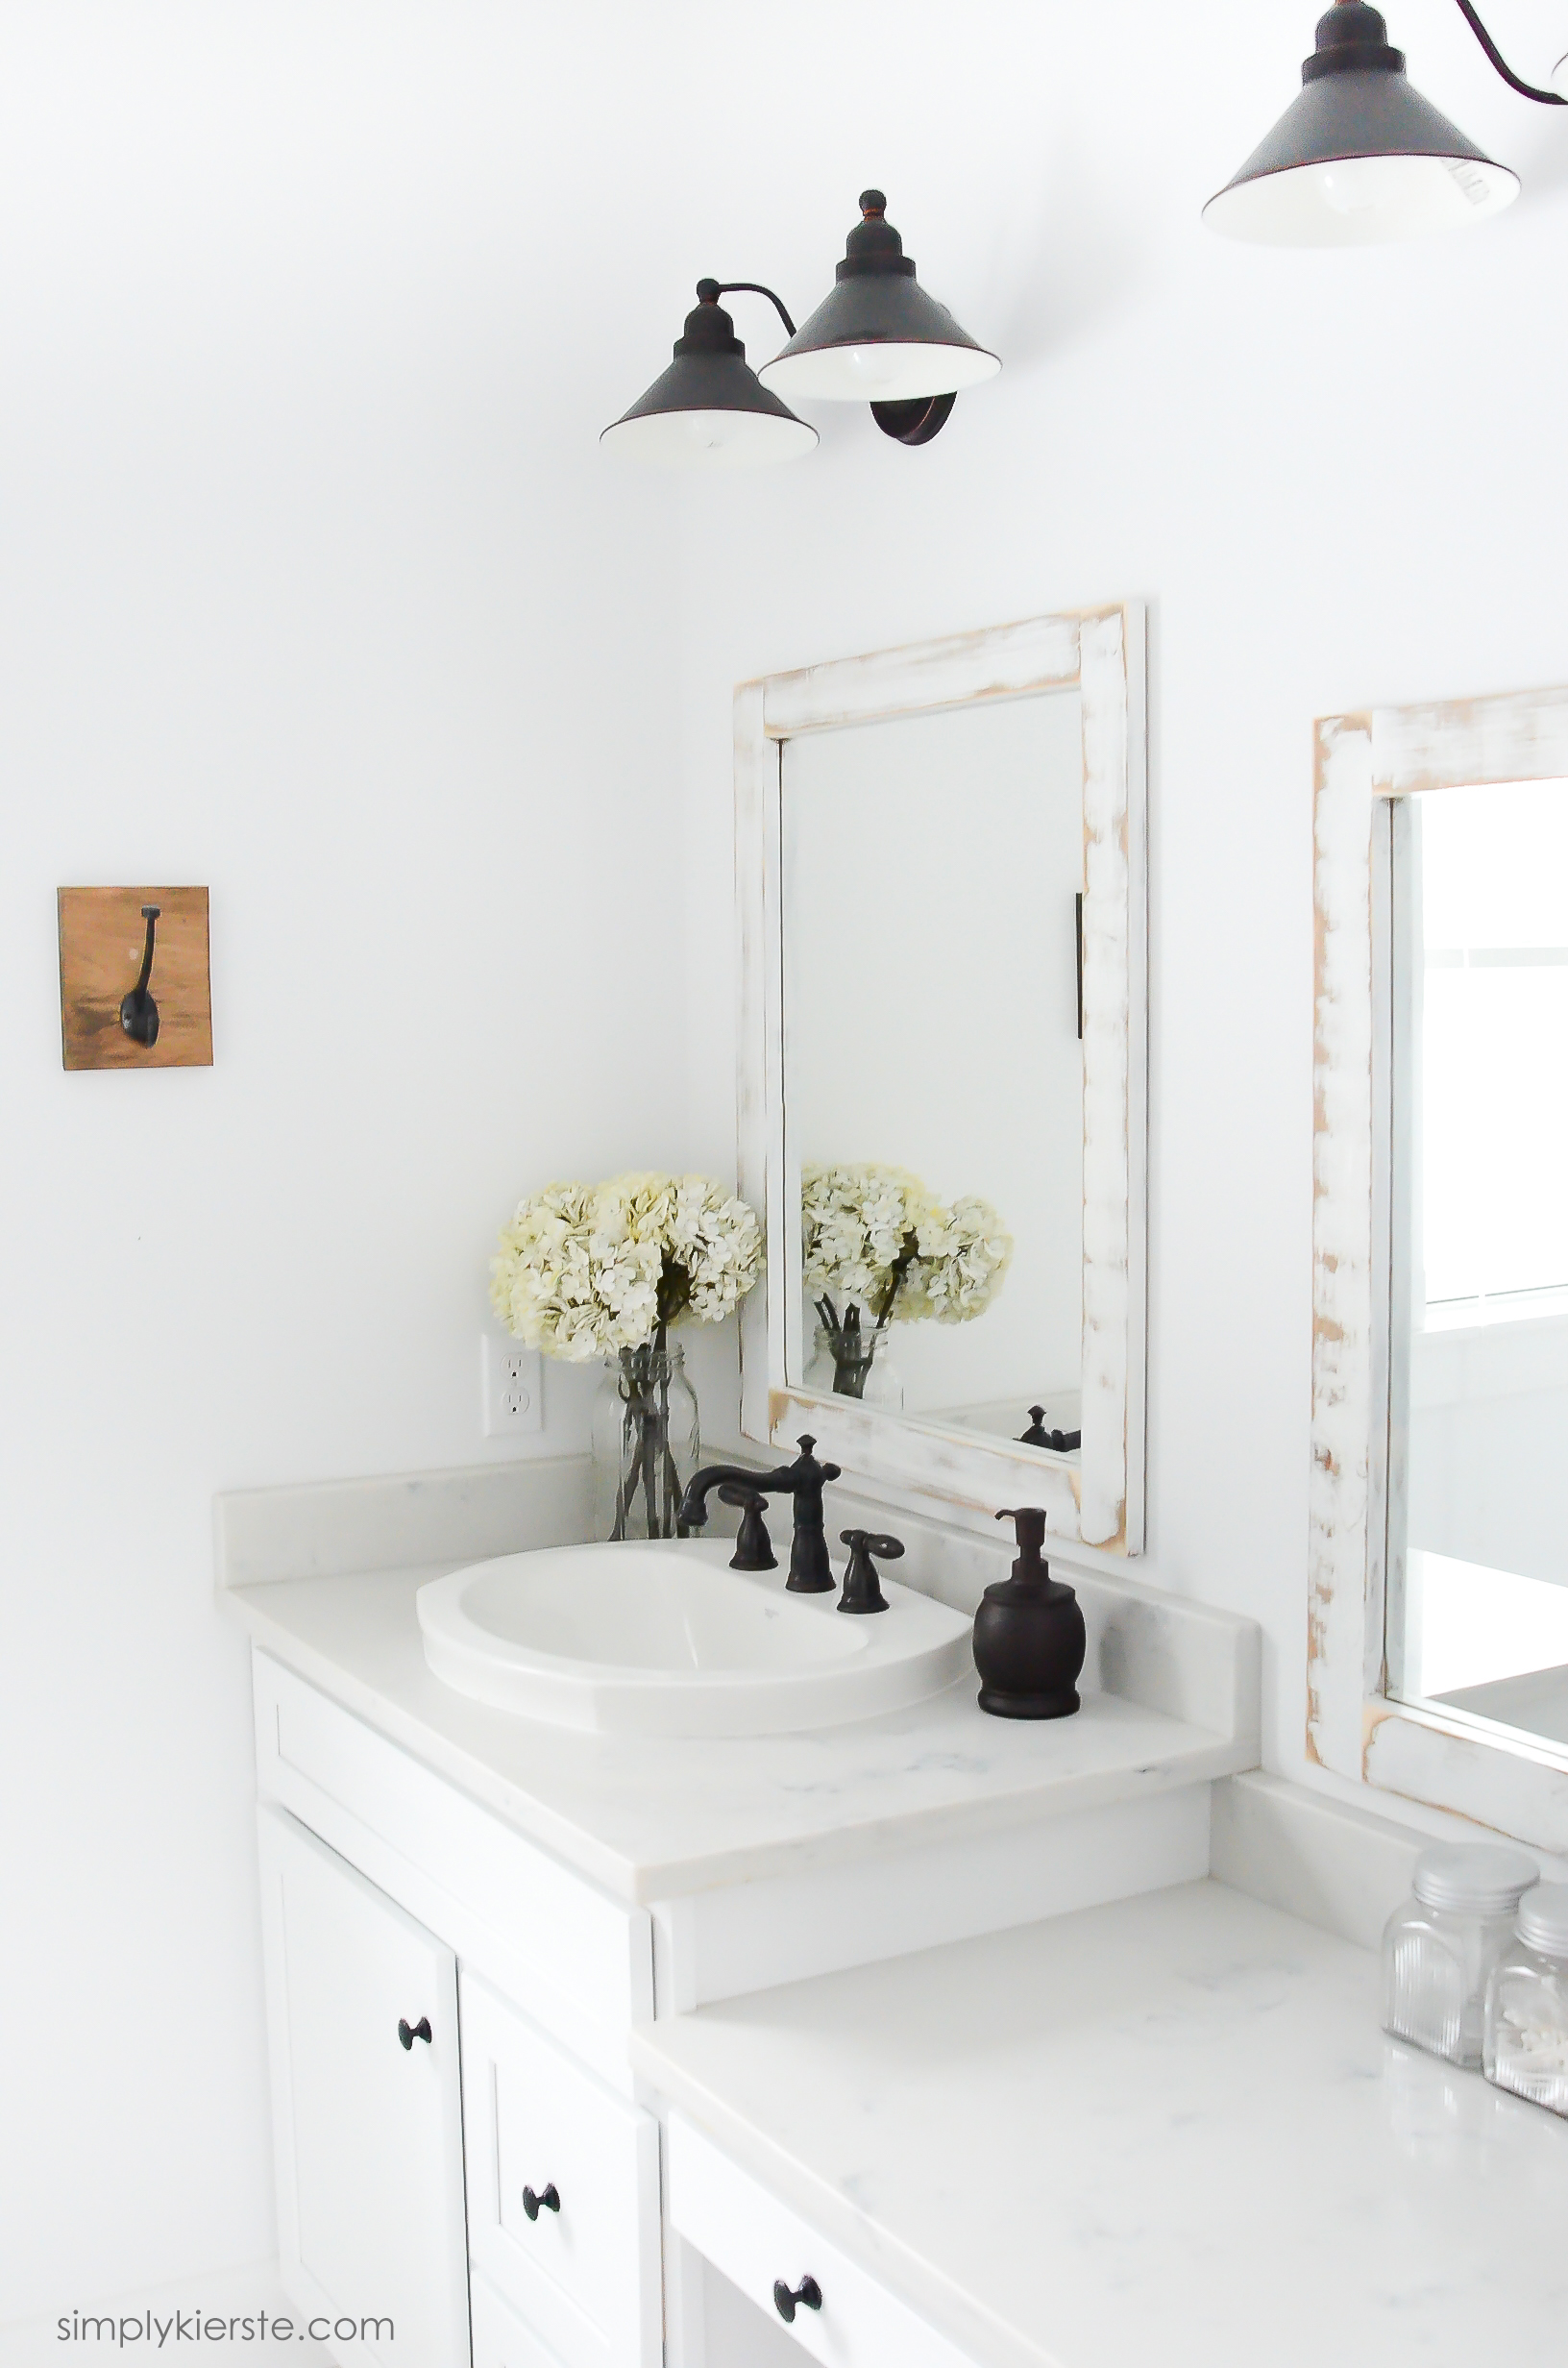 Farmhouse Bathroom + DIY Framed Mirrors - Simply Kierste Design Co.